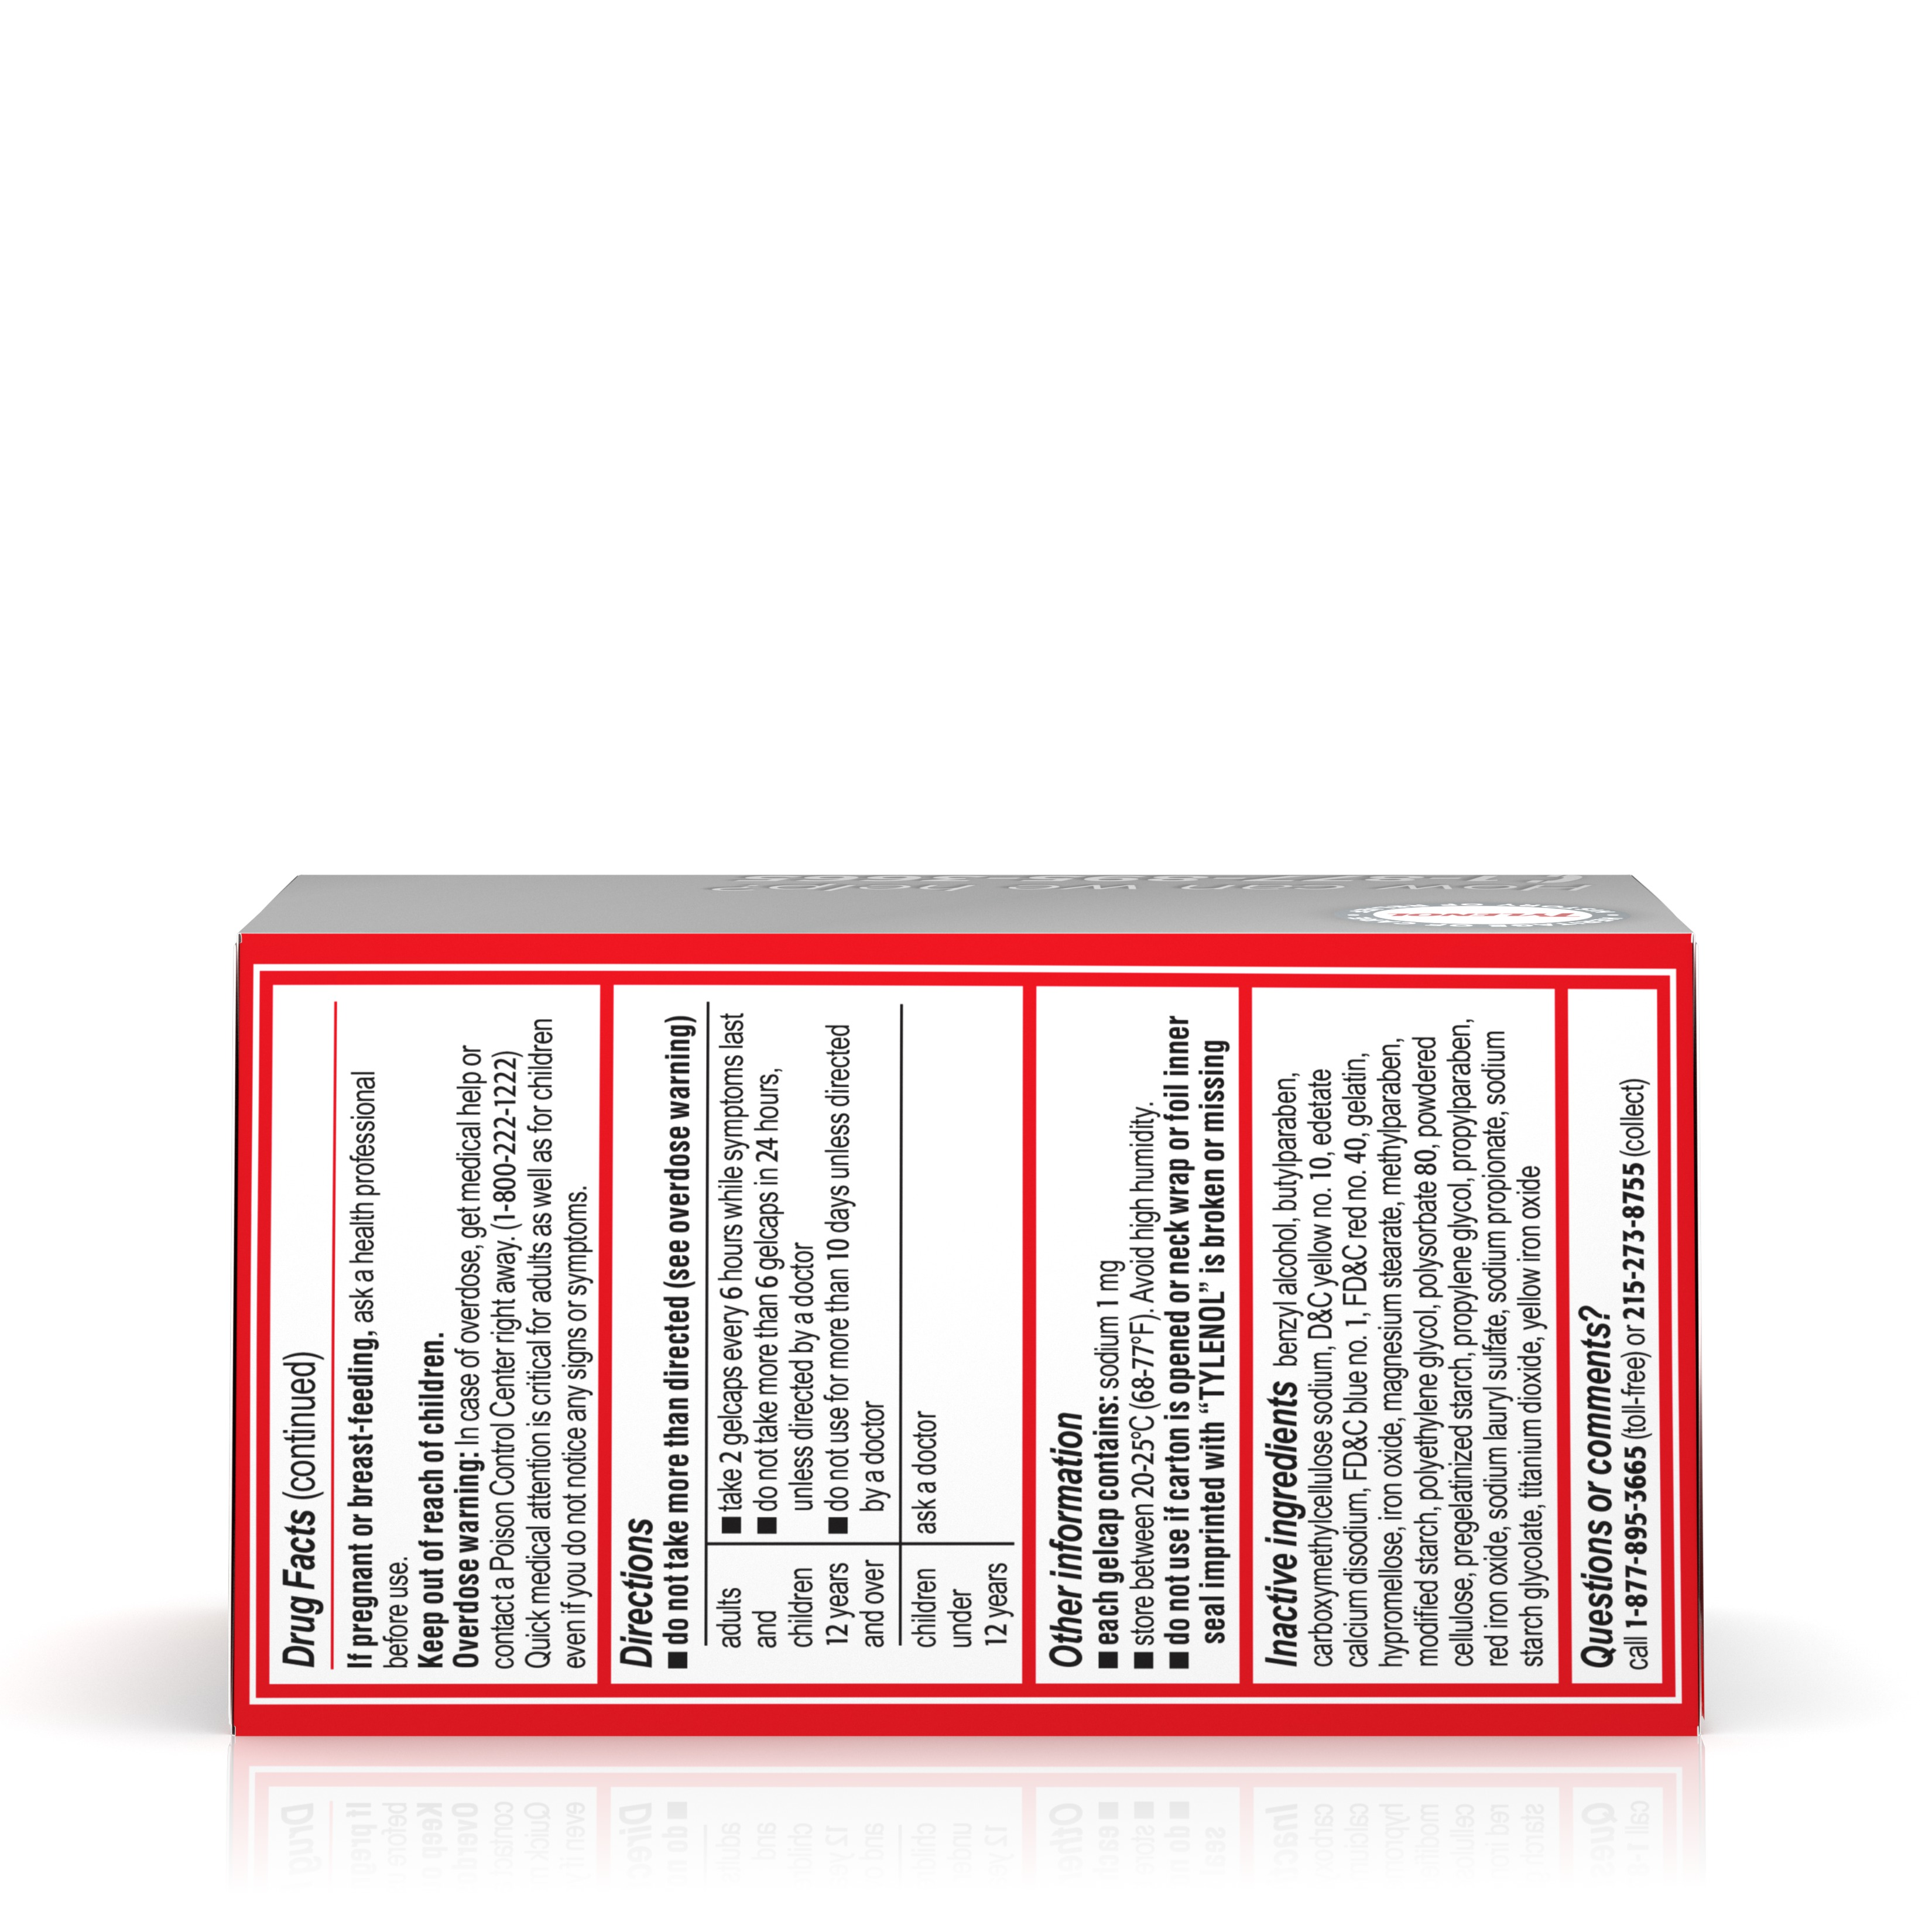 Tylenol rapid release gels fever reducer and pain reliever 500 tylenol rapid release gels fever reducer and pain reliever 500 mg 100 ct walmart nvjuhfo Images